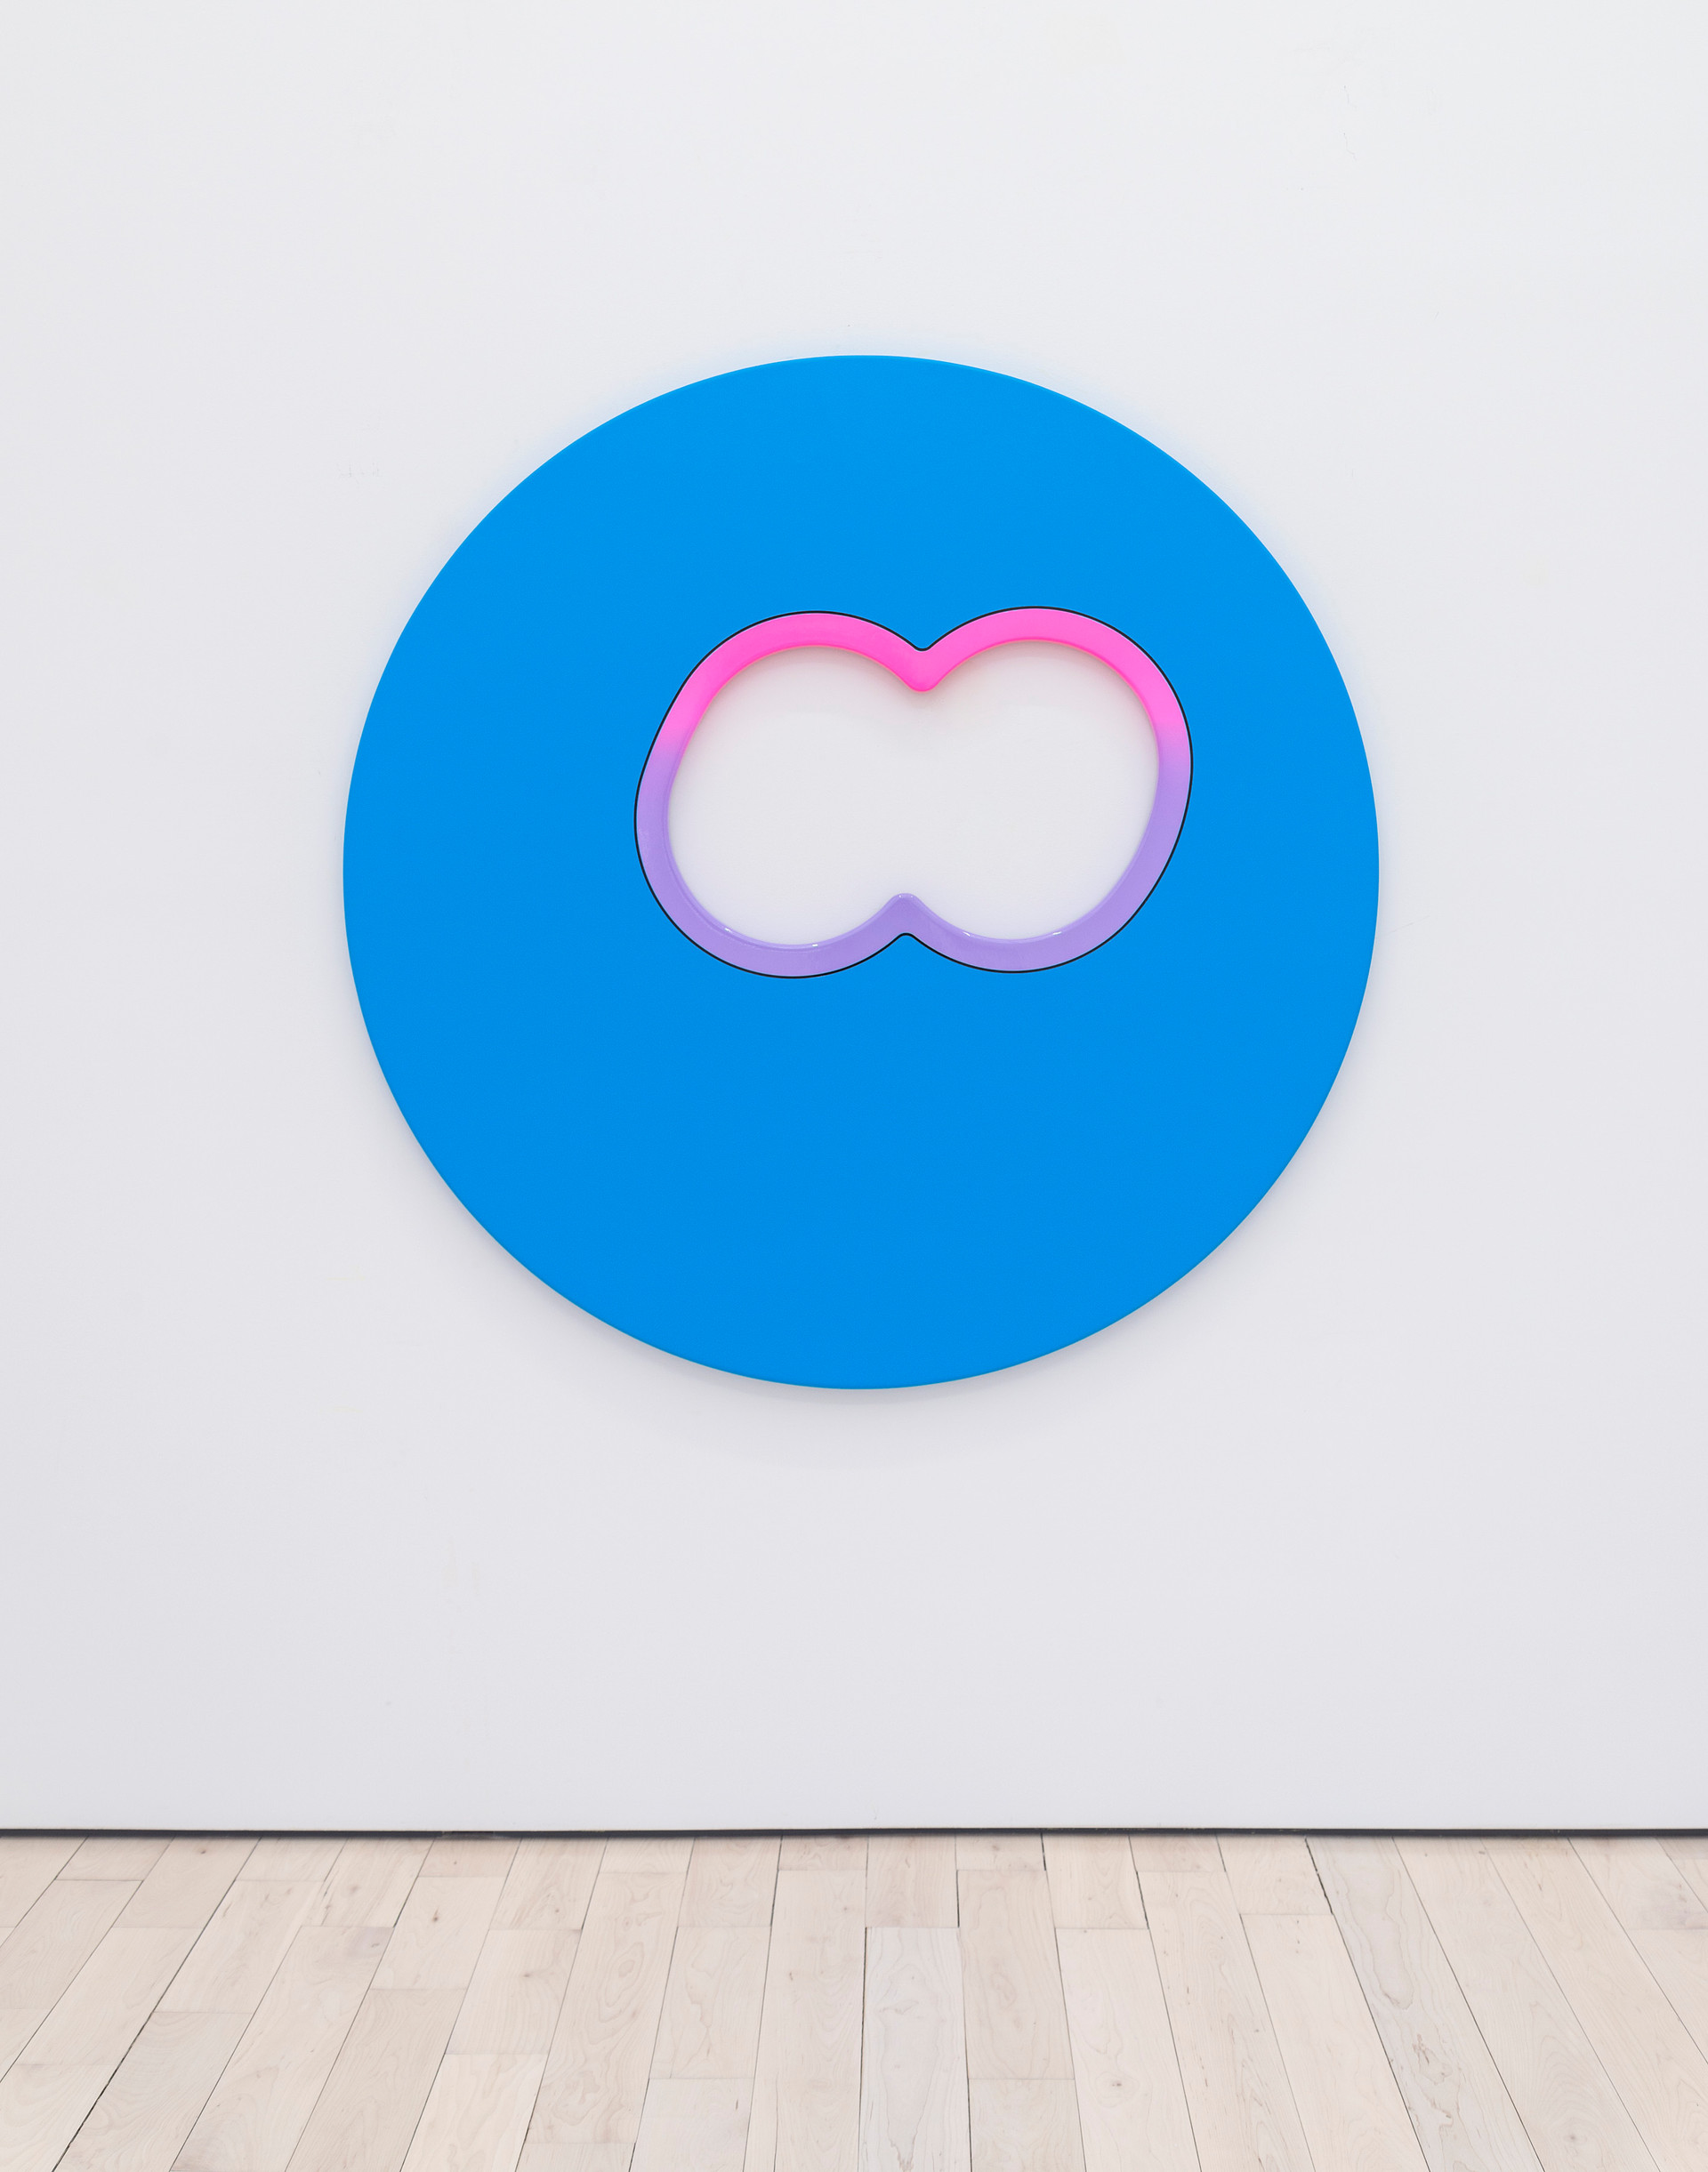 Greg Bogin  Outgoing Message, 2018 – 2019  Acrylic and urethane on canvas  50 x 50 inches